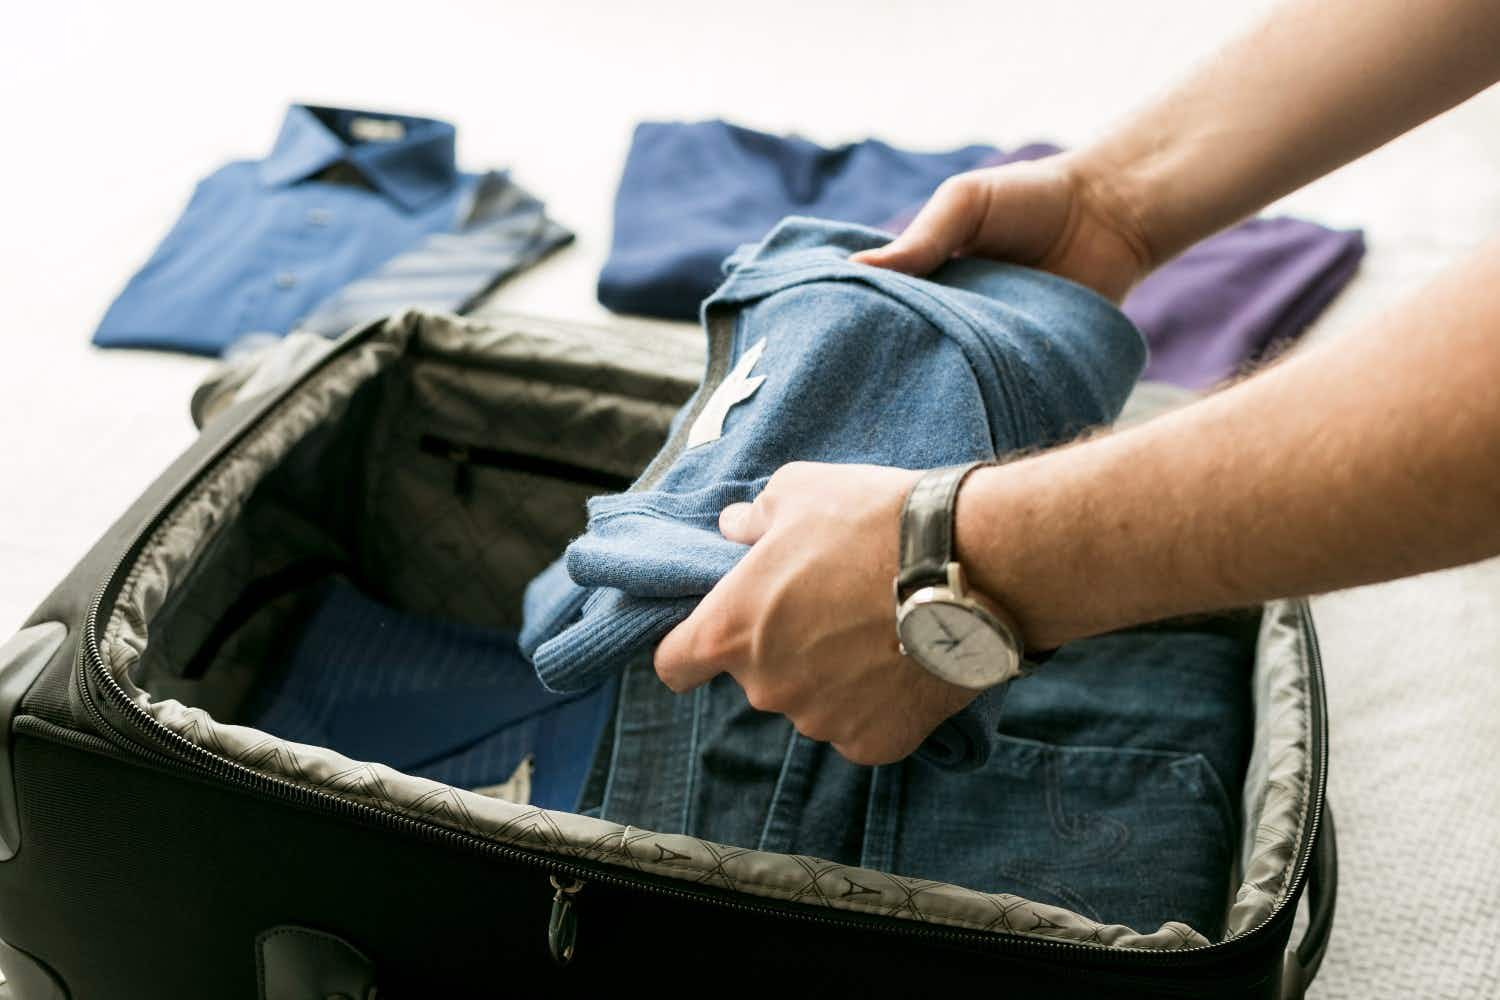 An airline passenger was refused boarding for wearing too much clothing